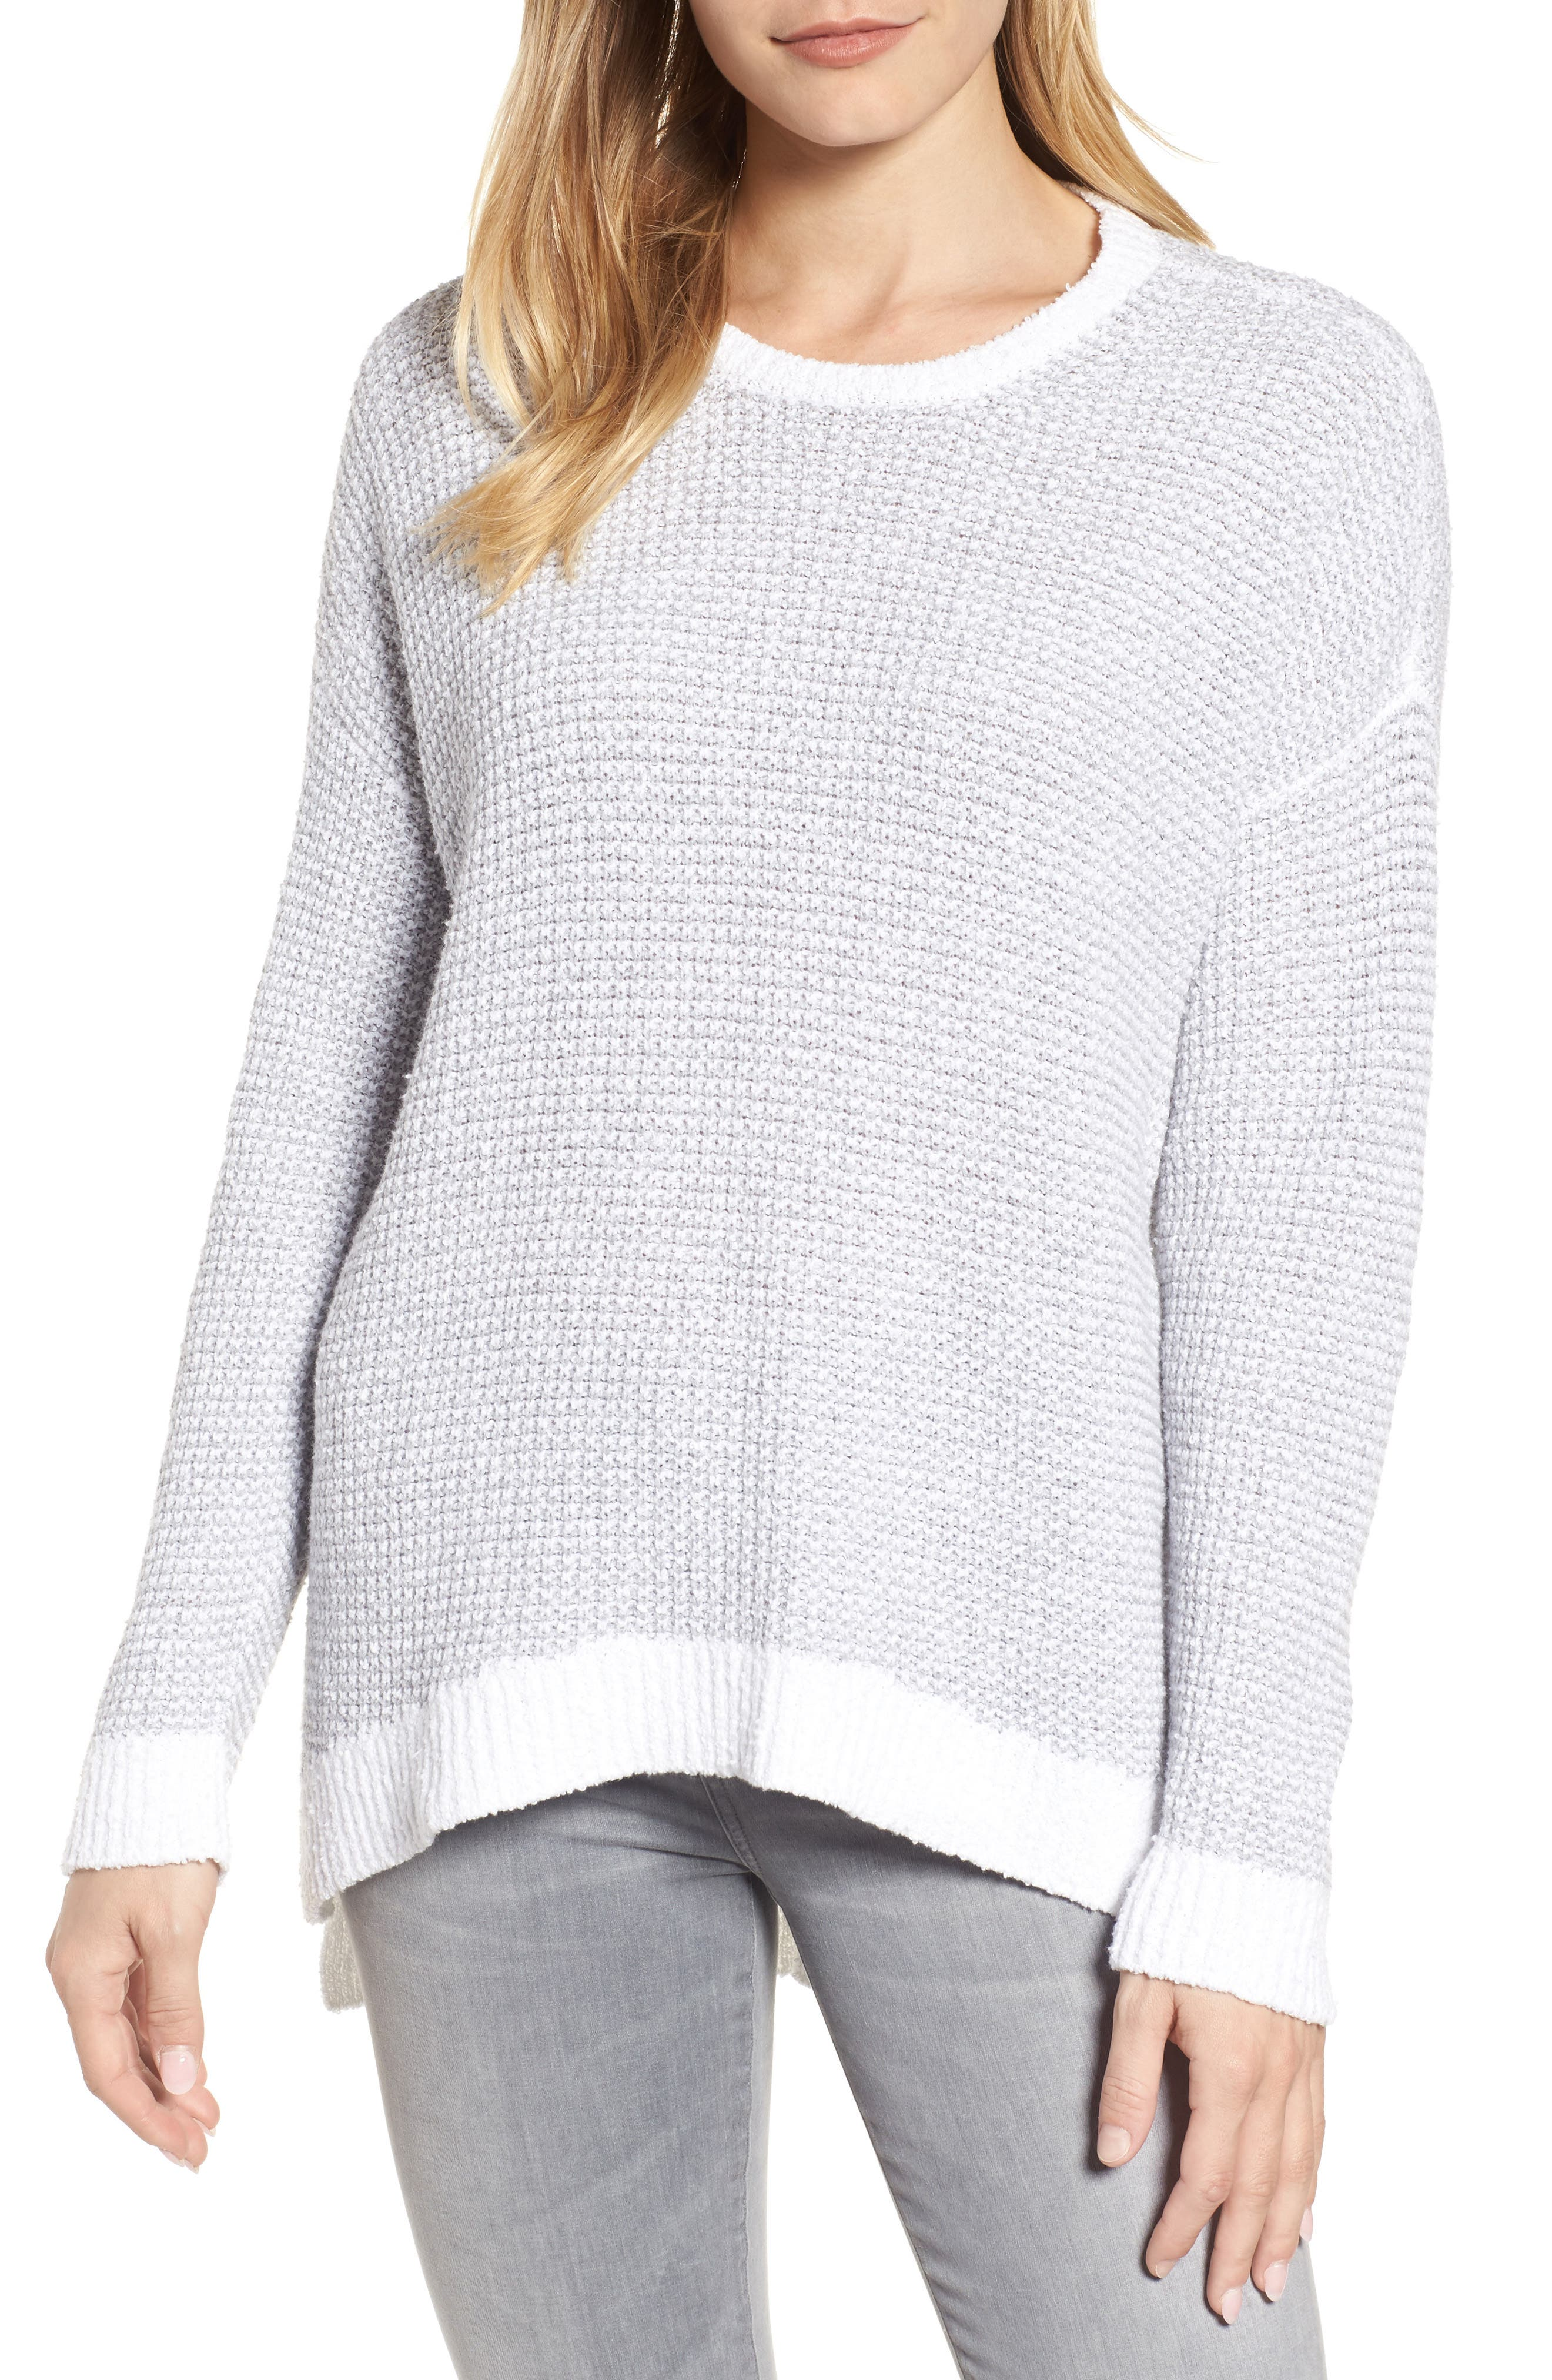 Waffled Organic Cotton Sweater,                         Main,                         color, 022